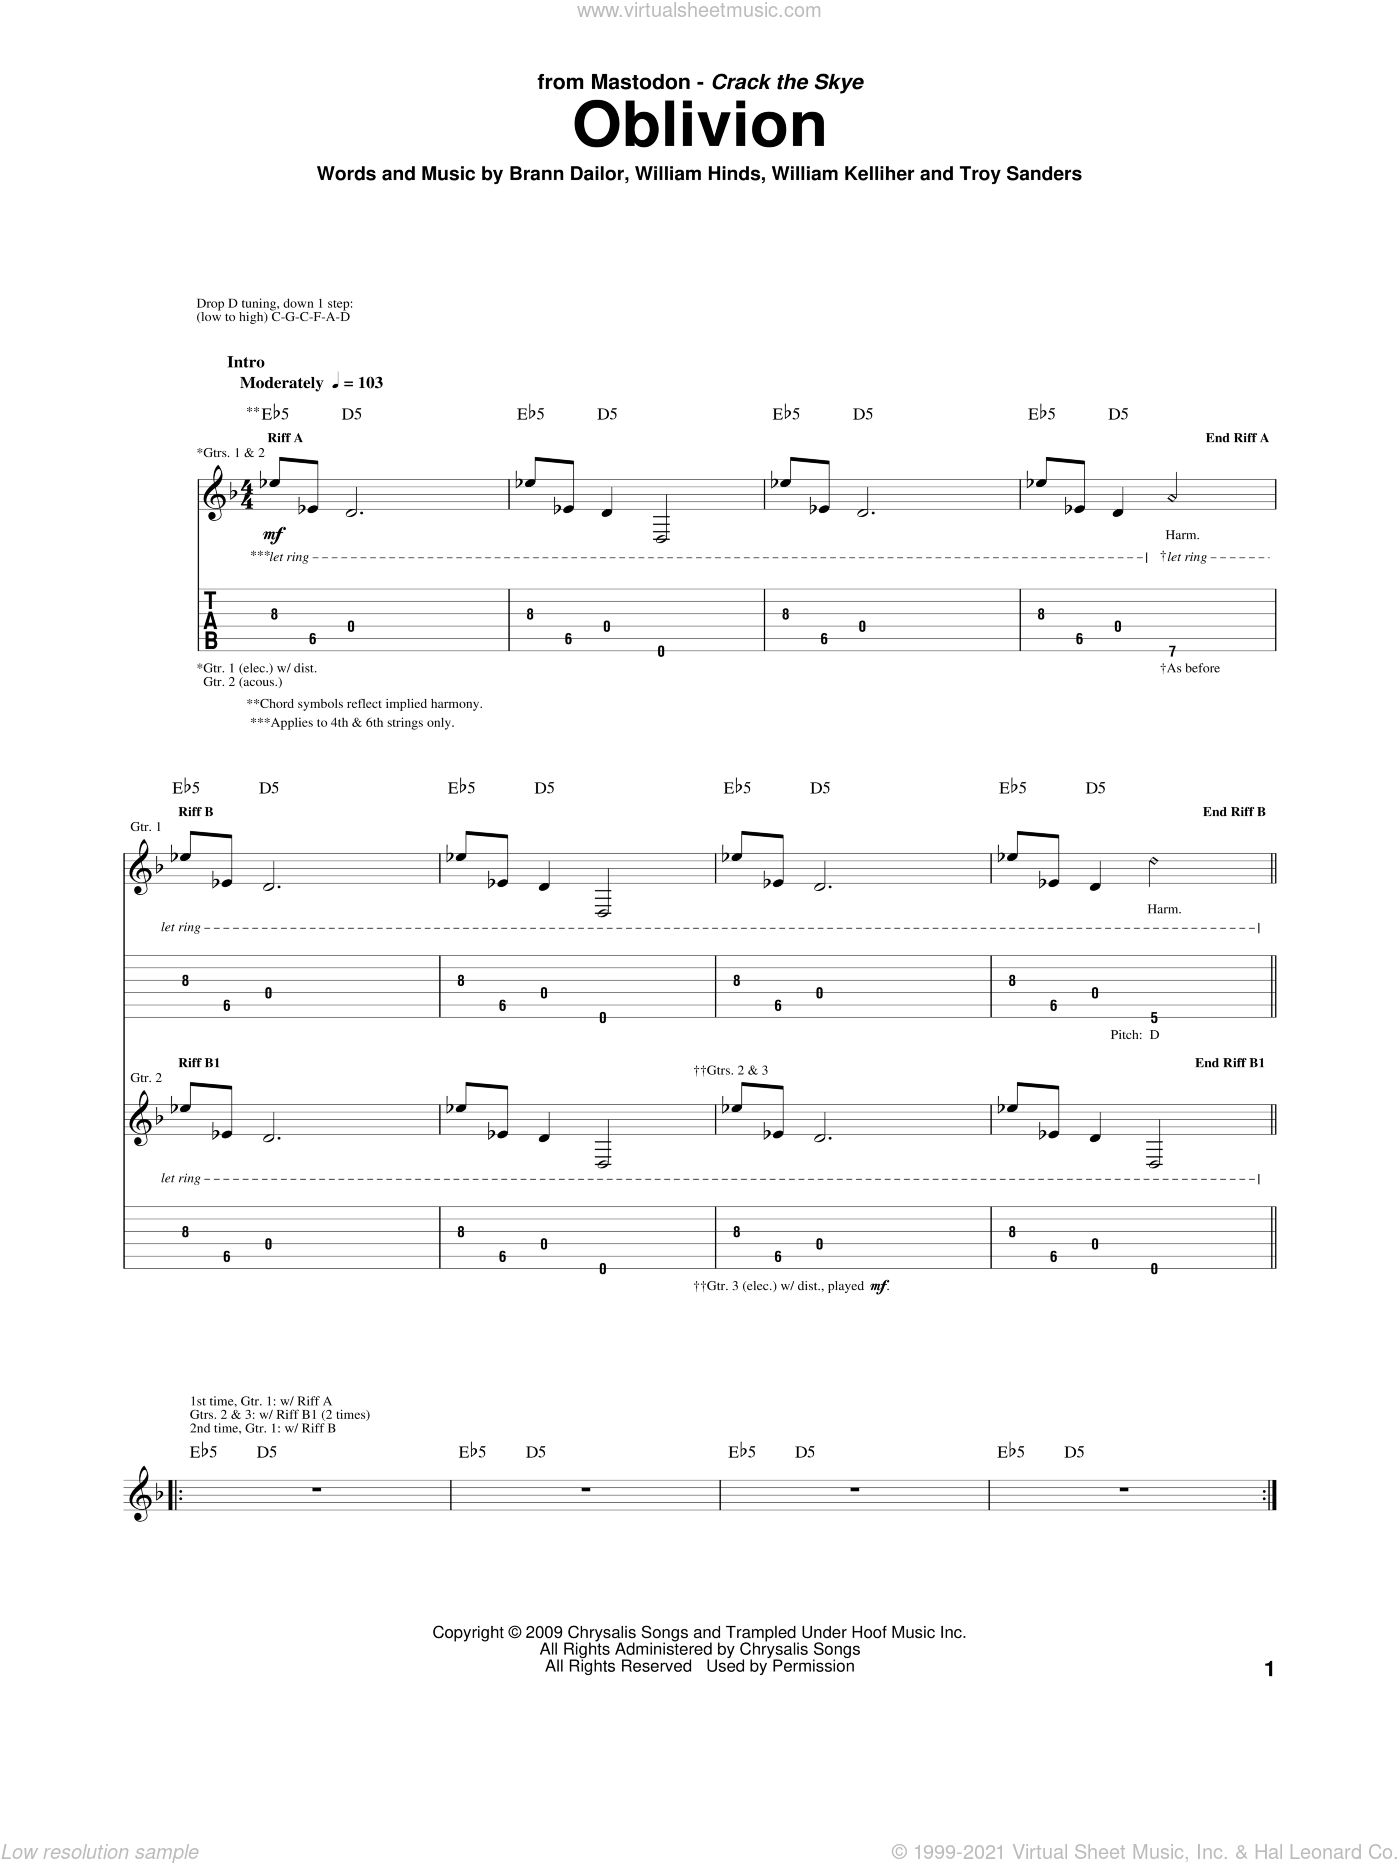 Oblivion sheet music for guitar (tablature) by William Kelliher